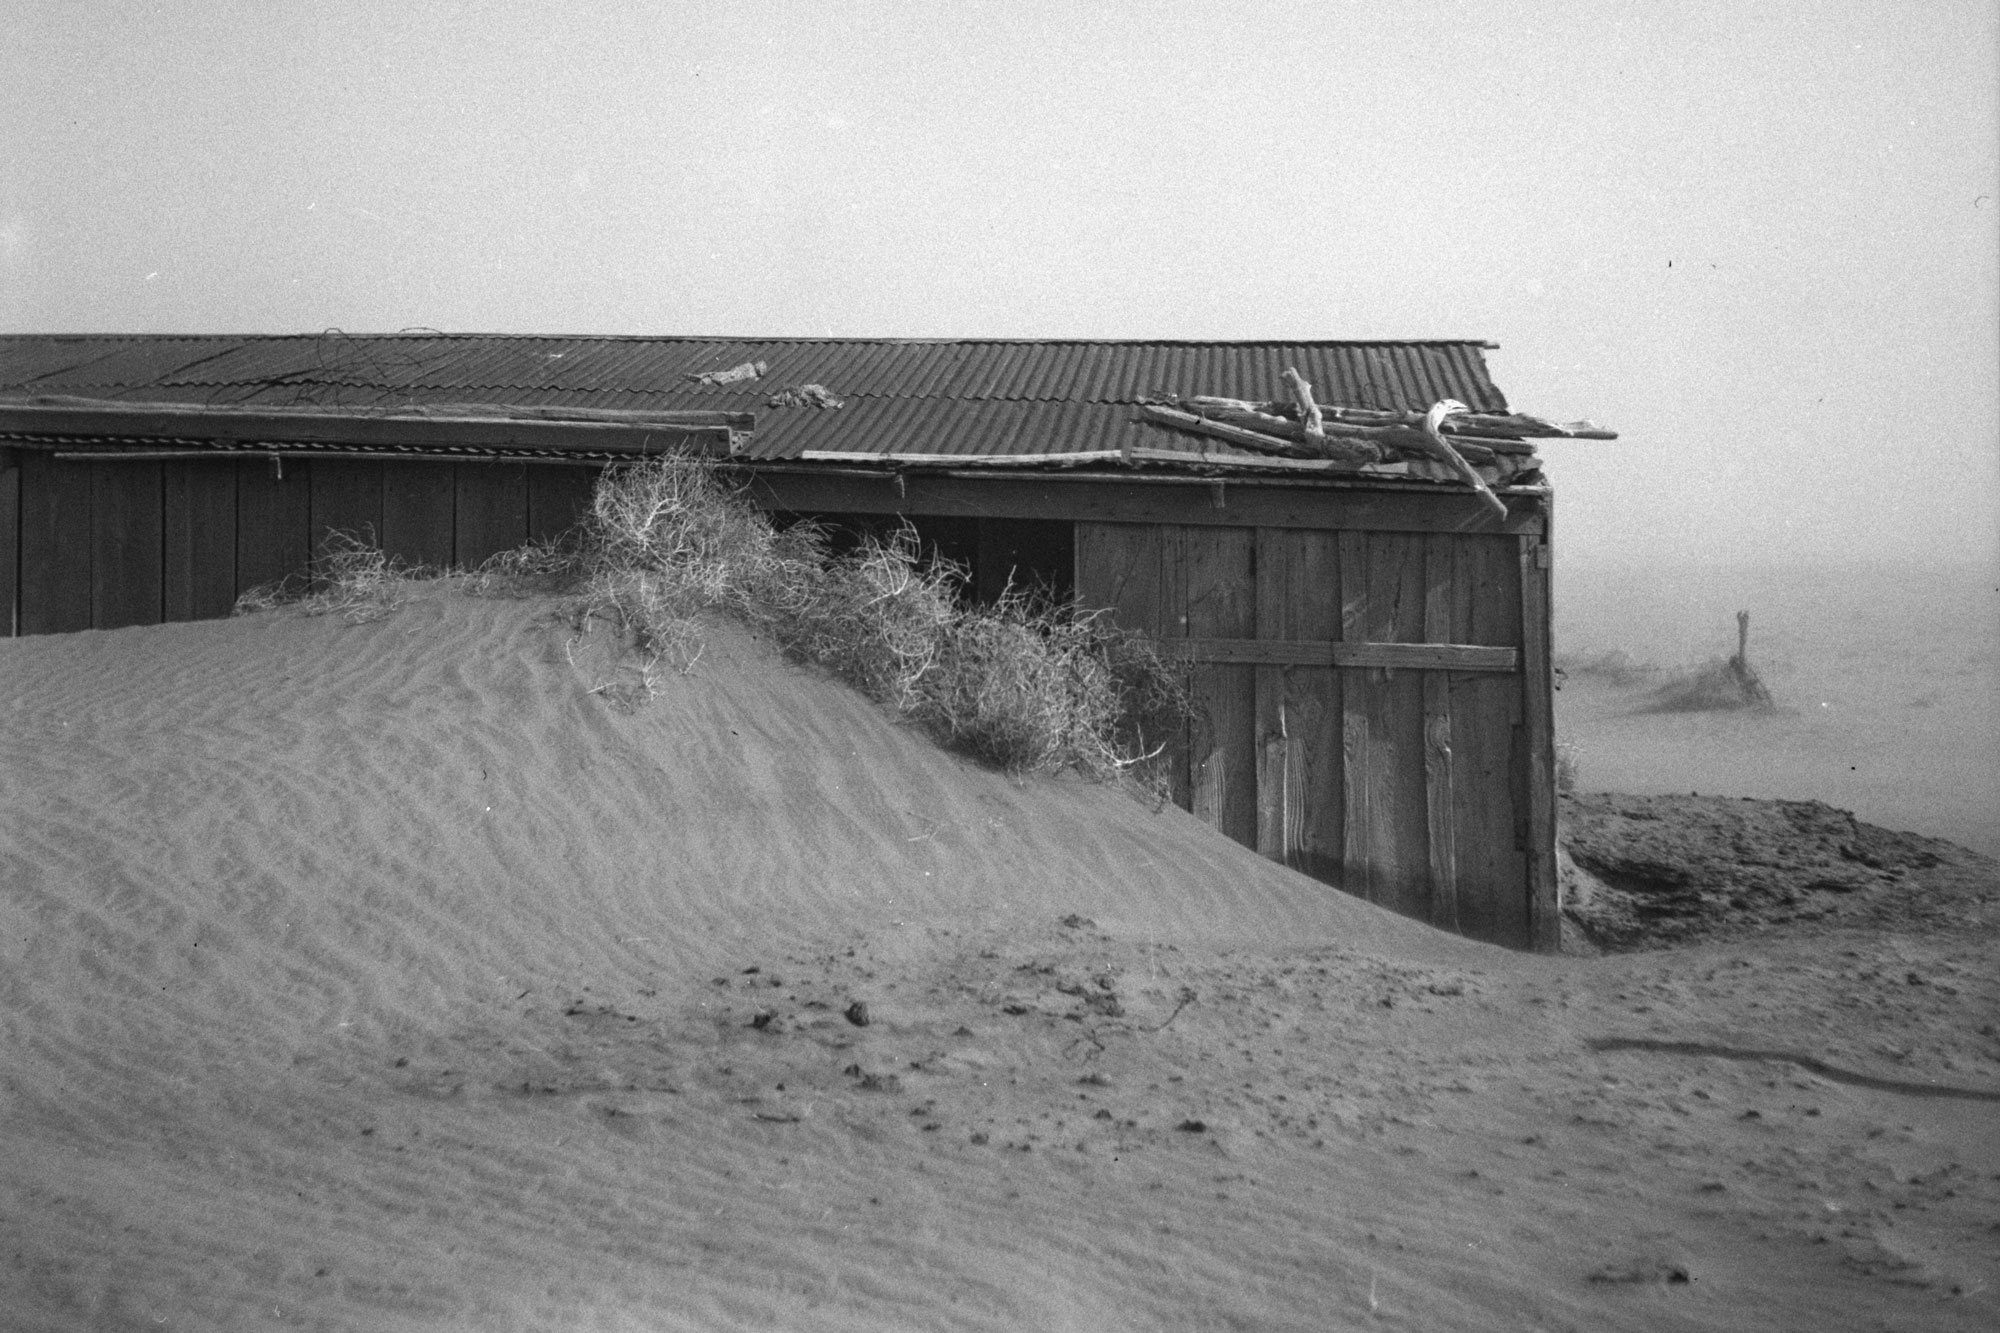 Photo of the Oklahoma Dust Bowl of the 1930s